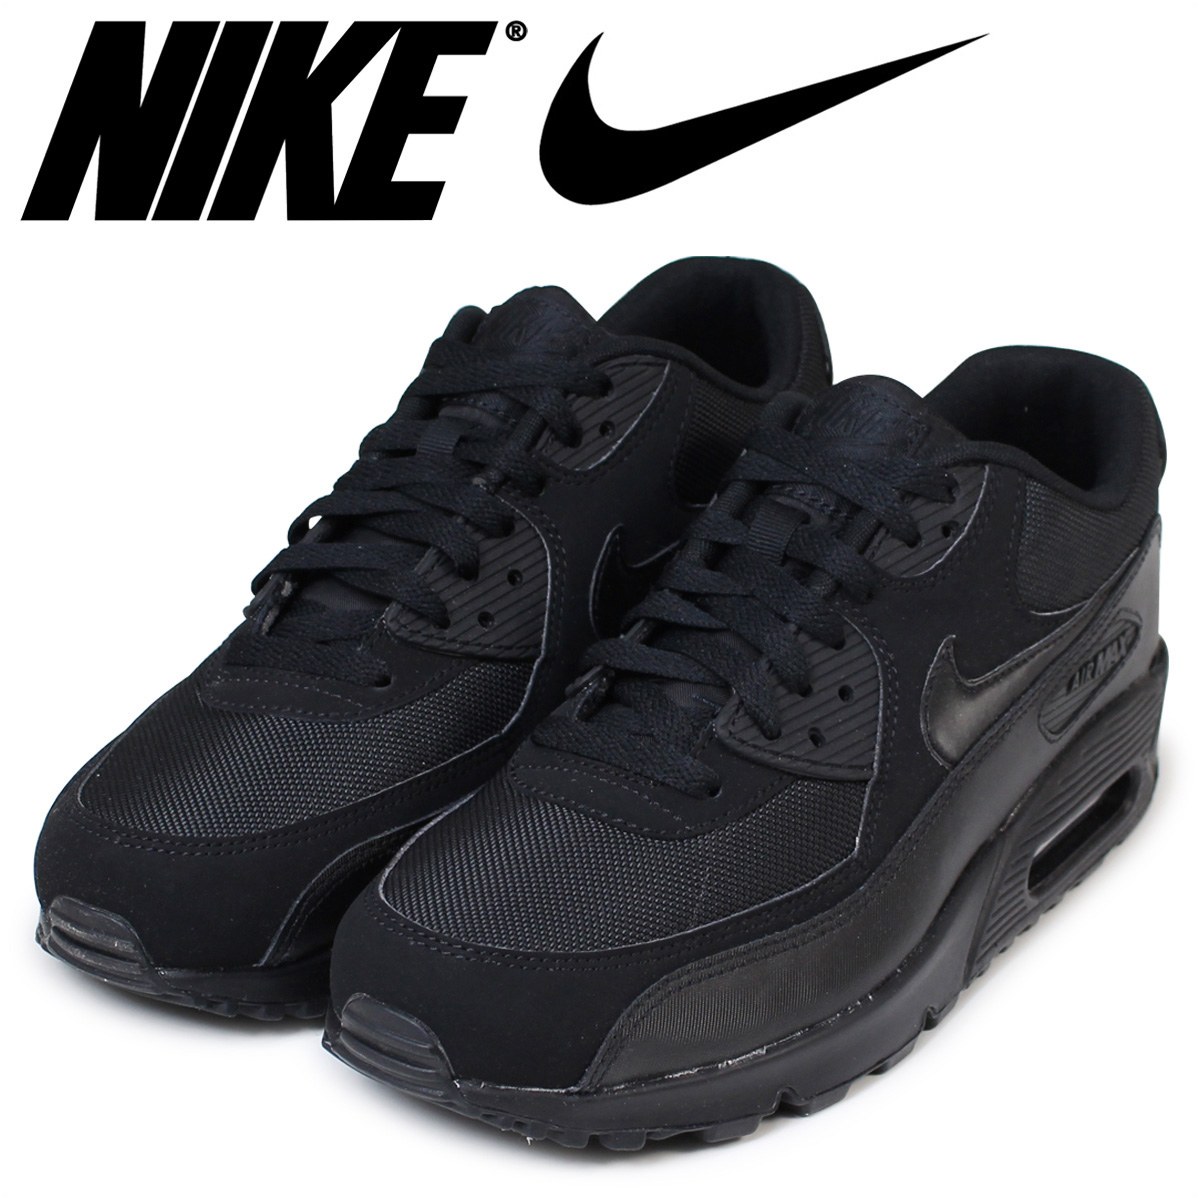 quality design 625c4 57118 up to 2,000 yen OFF coupon Nike NIKE Air Max men sneakers AIR MAX 90  ESSENTIAL 537,384-090 shoes black 124 Shinnyu load